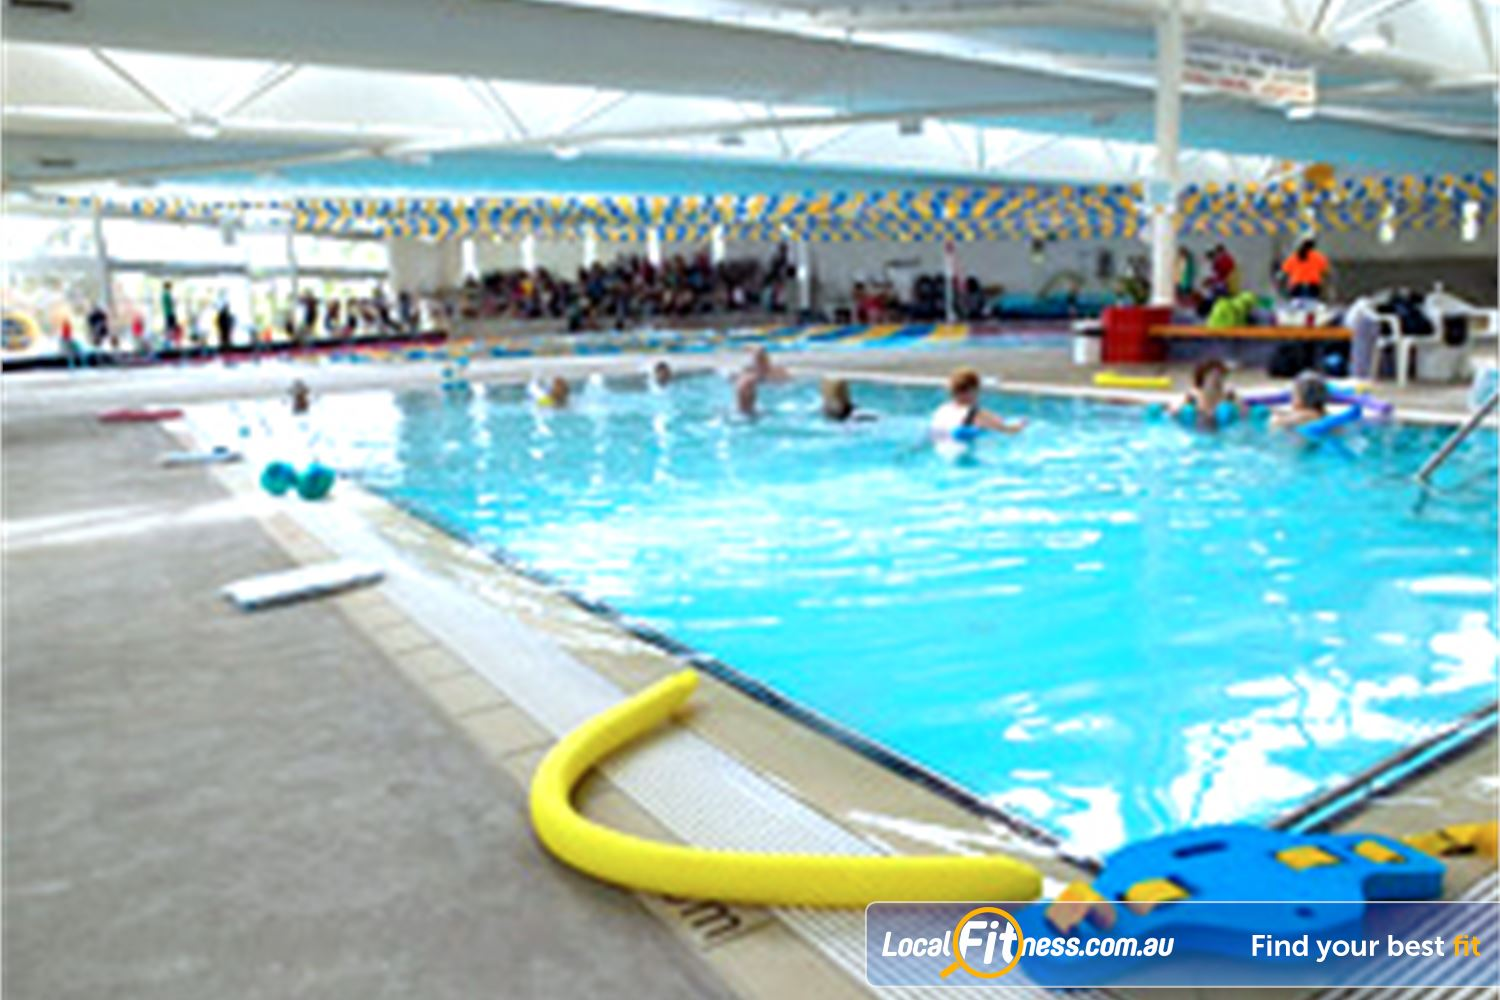 Whitlam leisure centre liverpool gym free 3 day pass - Hotels with swimming pools in liverpool ...